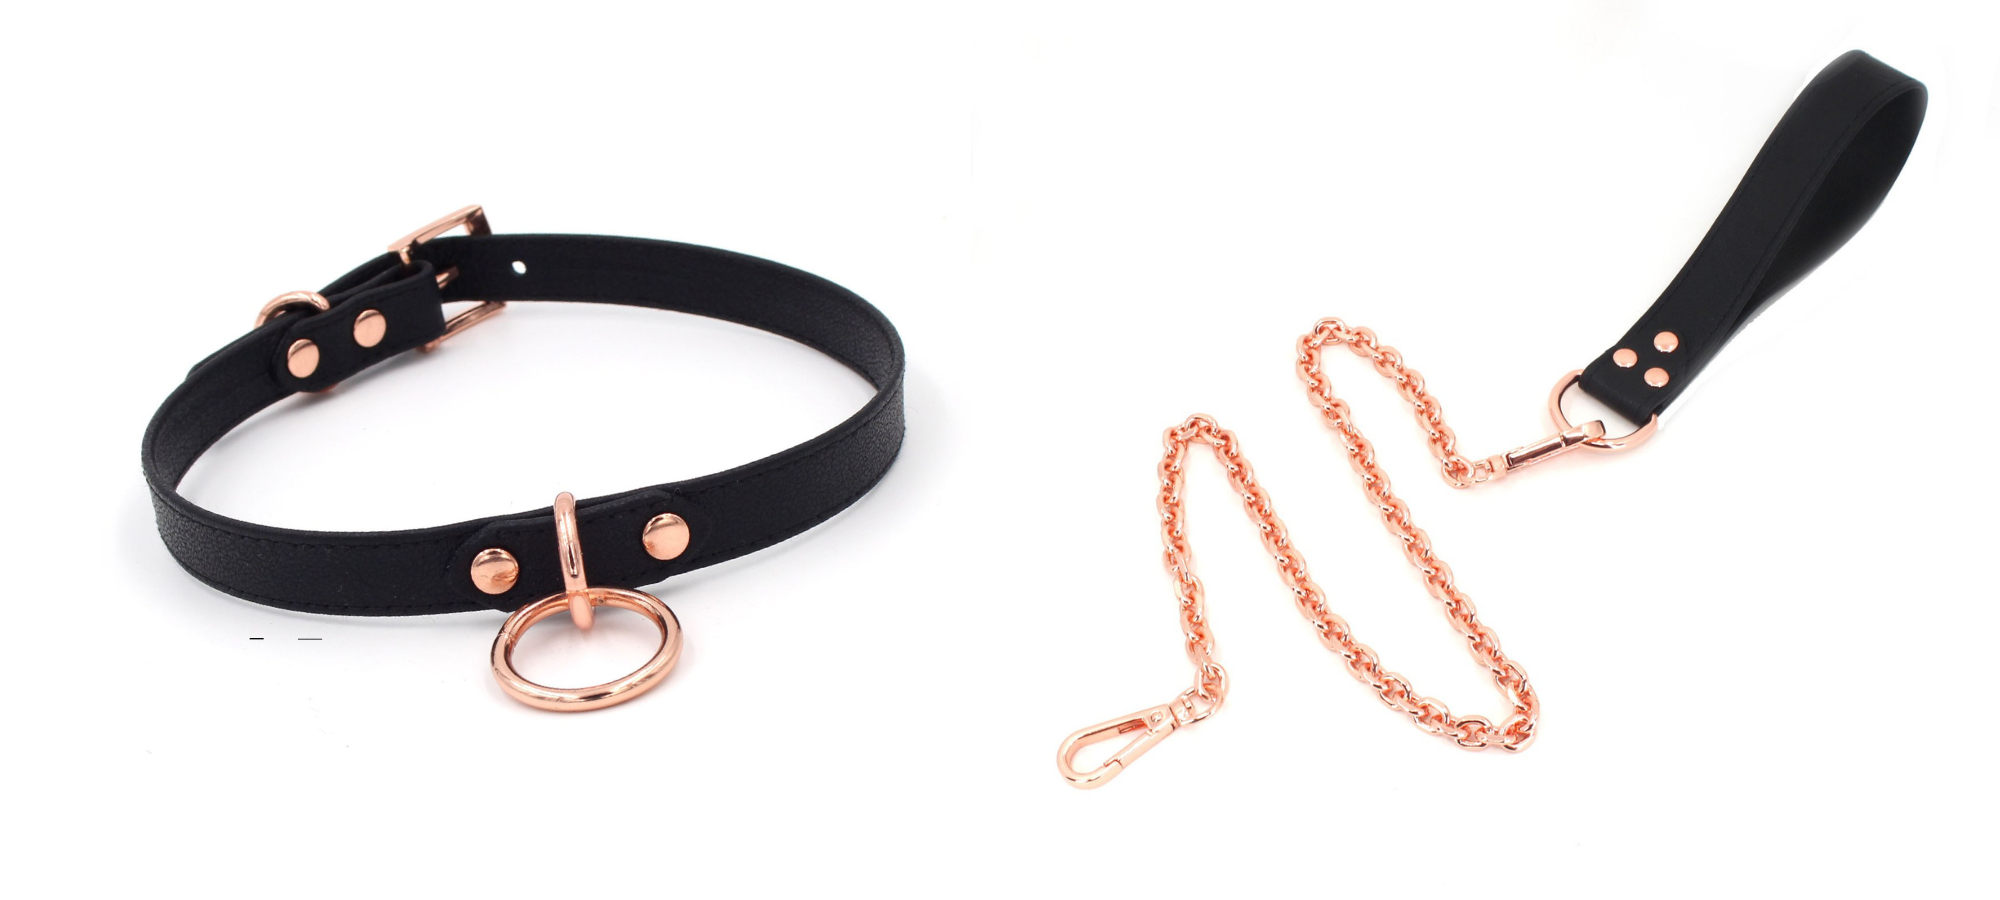 rose gold leash and collar restraint bdsm role play